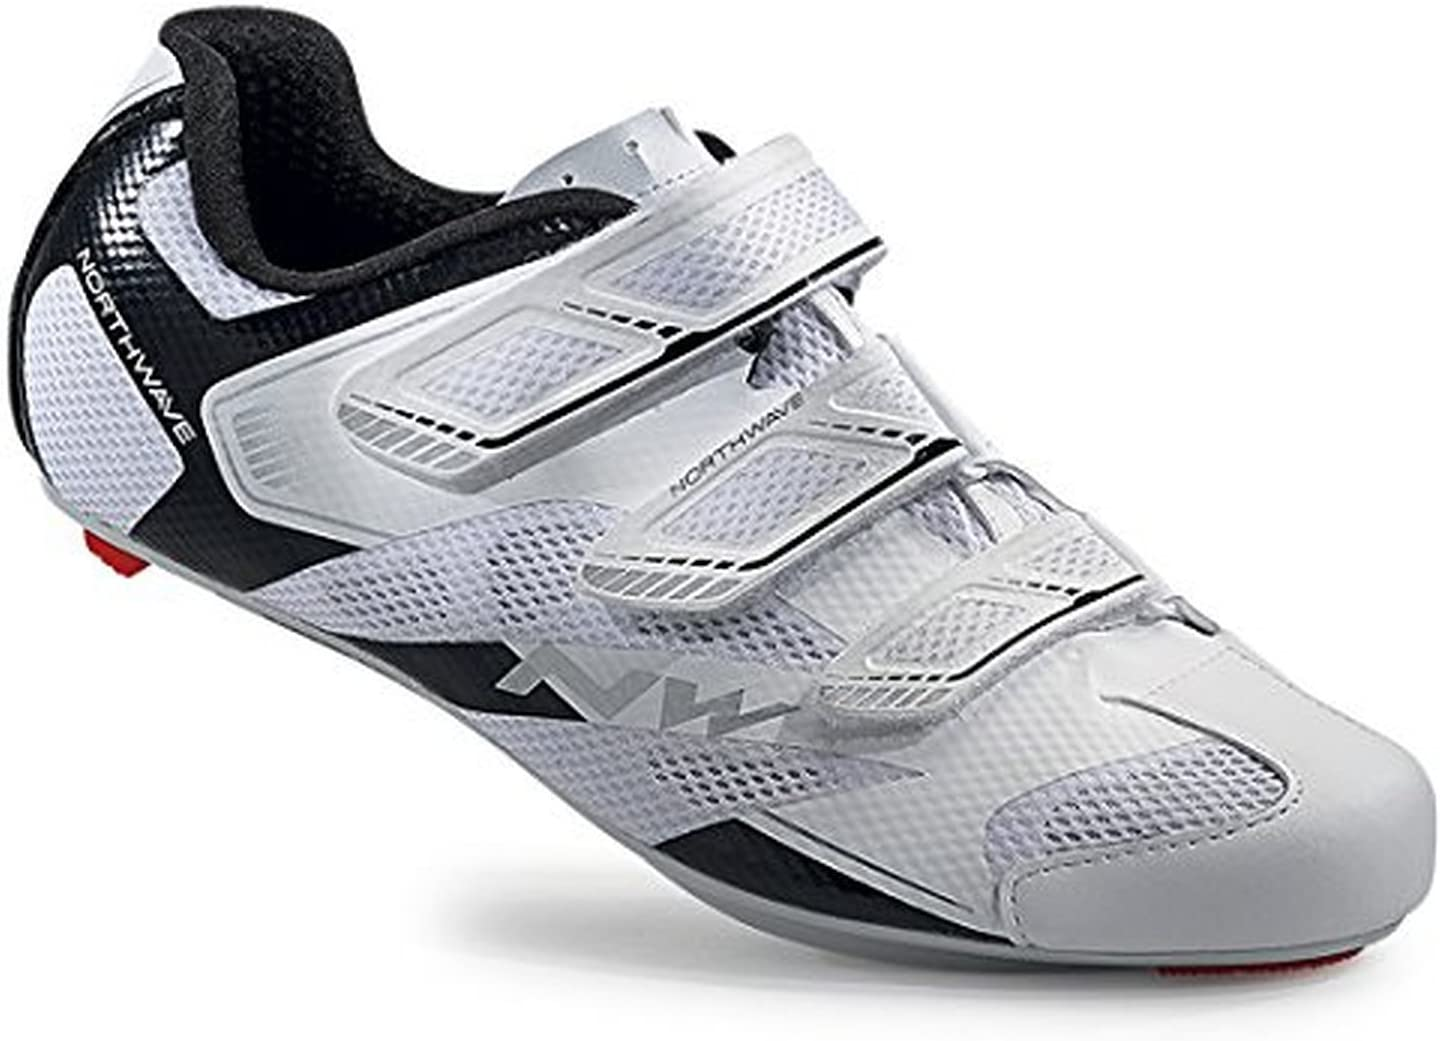 Northwave Sonic 2 White-Black Shoes 2016